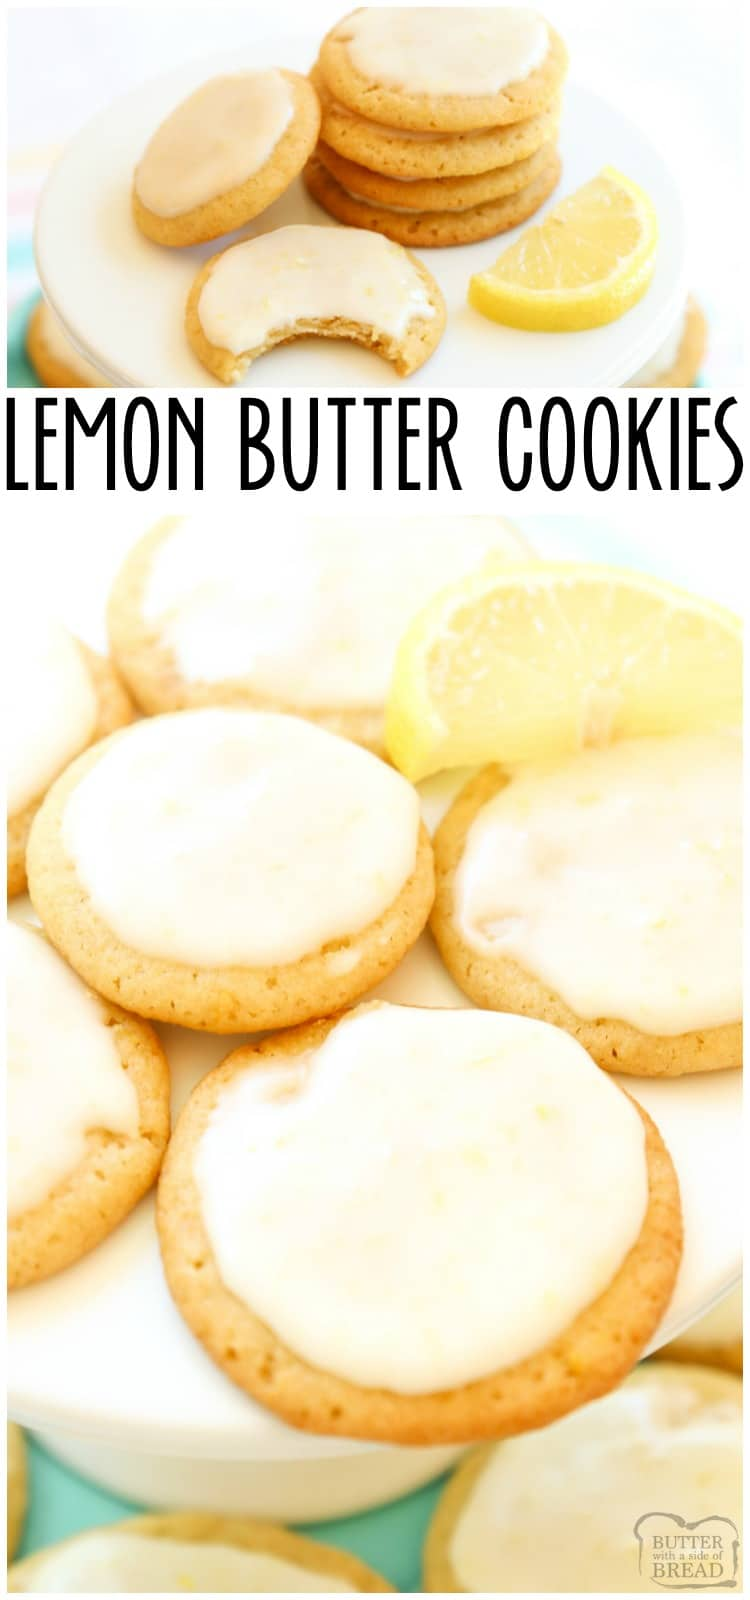 Lemon Butter Cookies is one of my favorite butter cookie recipes and lemon desserts! Every time I make them I'm surprised at just how GOOD these lemon cookies taste. #lemon #cookies #lemonbuttercookies #buttercookies #lemondessert #withicing #recipefrom Butter With a Side a Bread